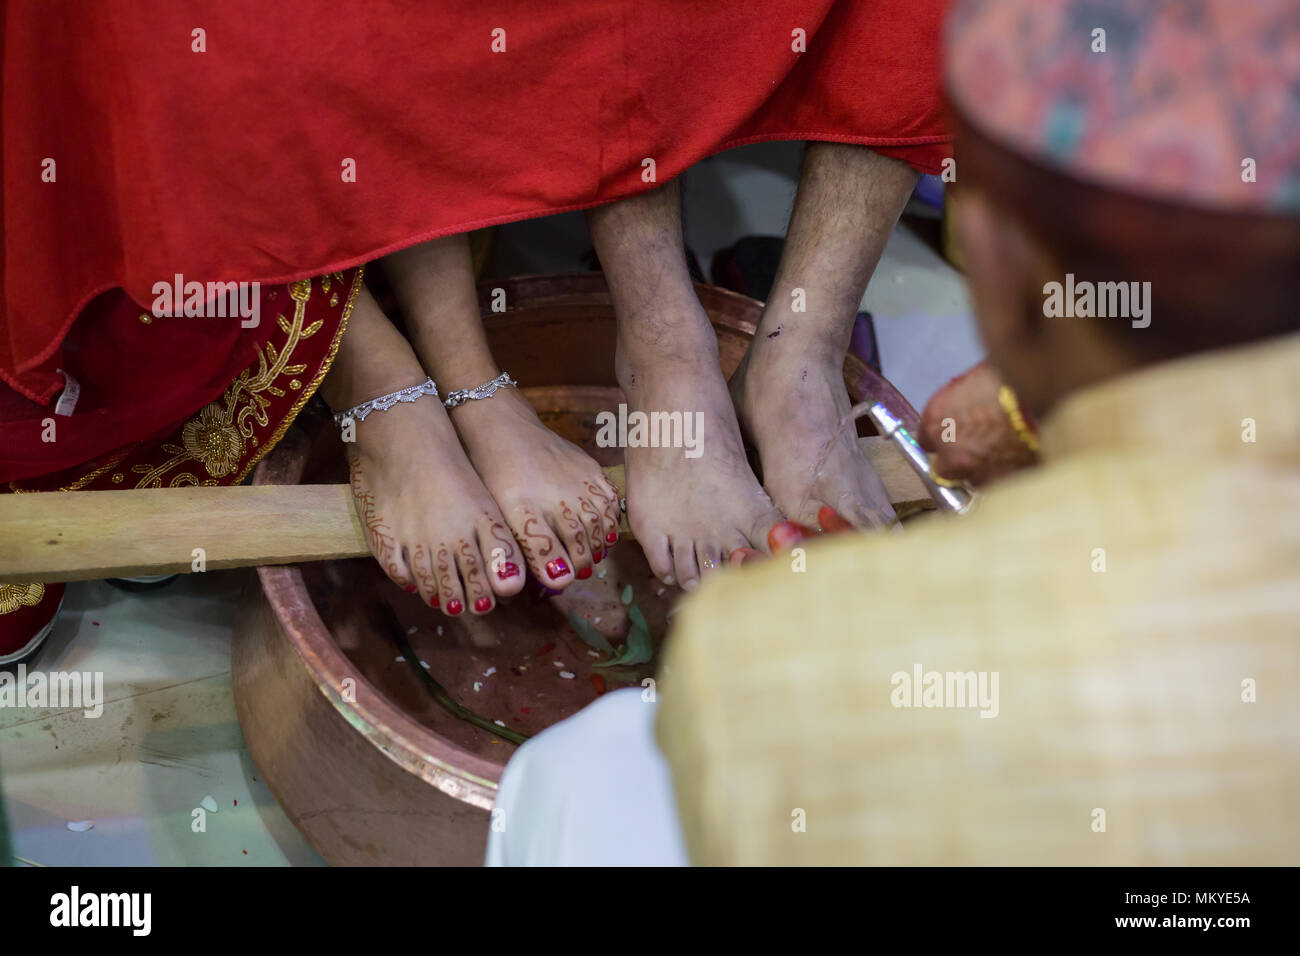 Nepalese Bride and Groom Performing Hindu Wedding Rituals  at Marriage Ceremony in Kathmandu,Nepal. - Stock Image